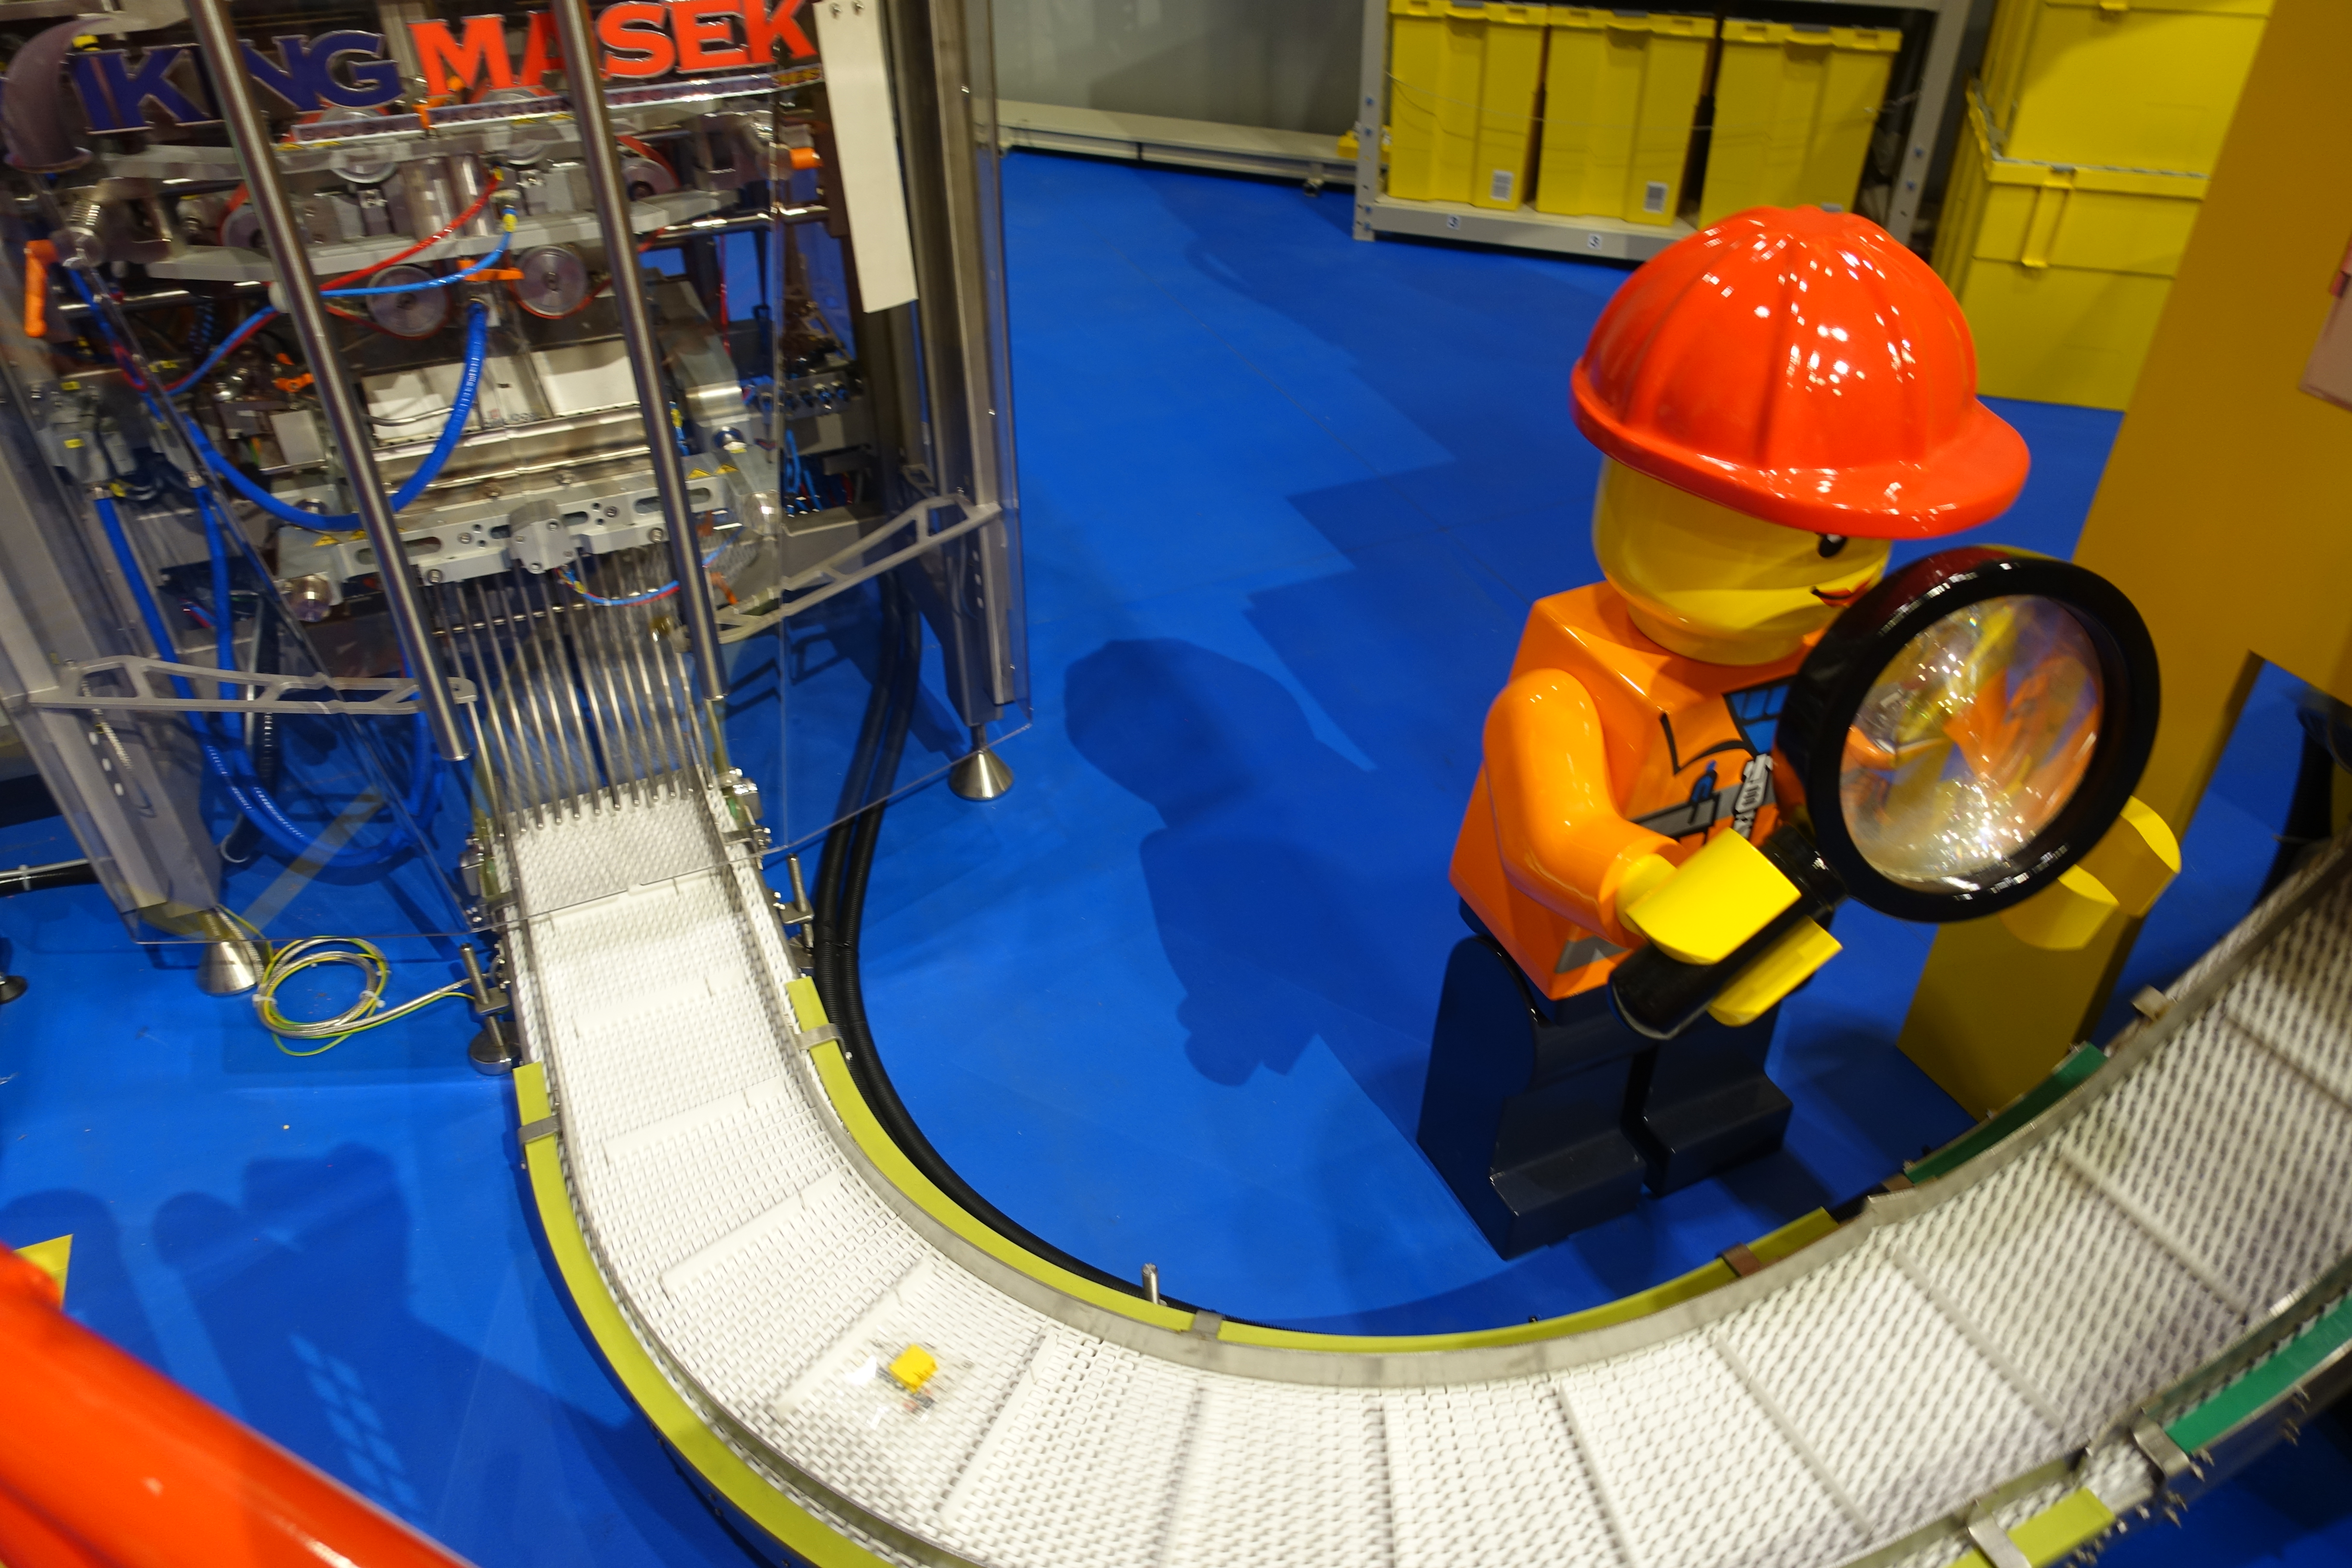 Giant Lego man inspecting a production line